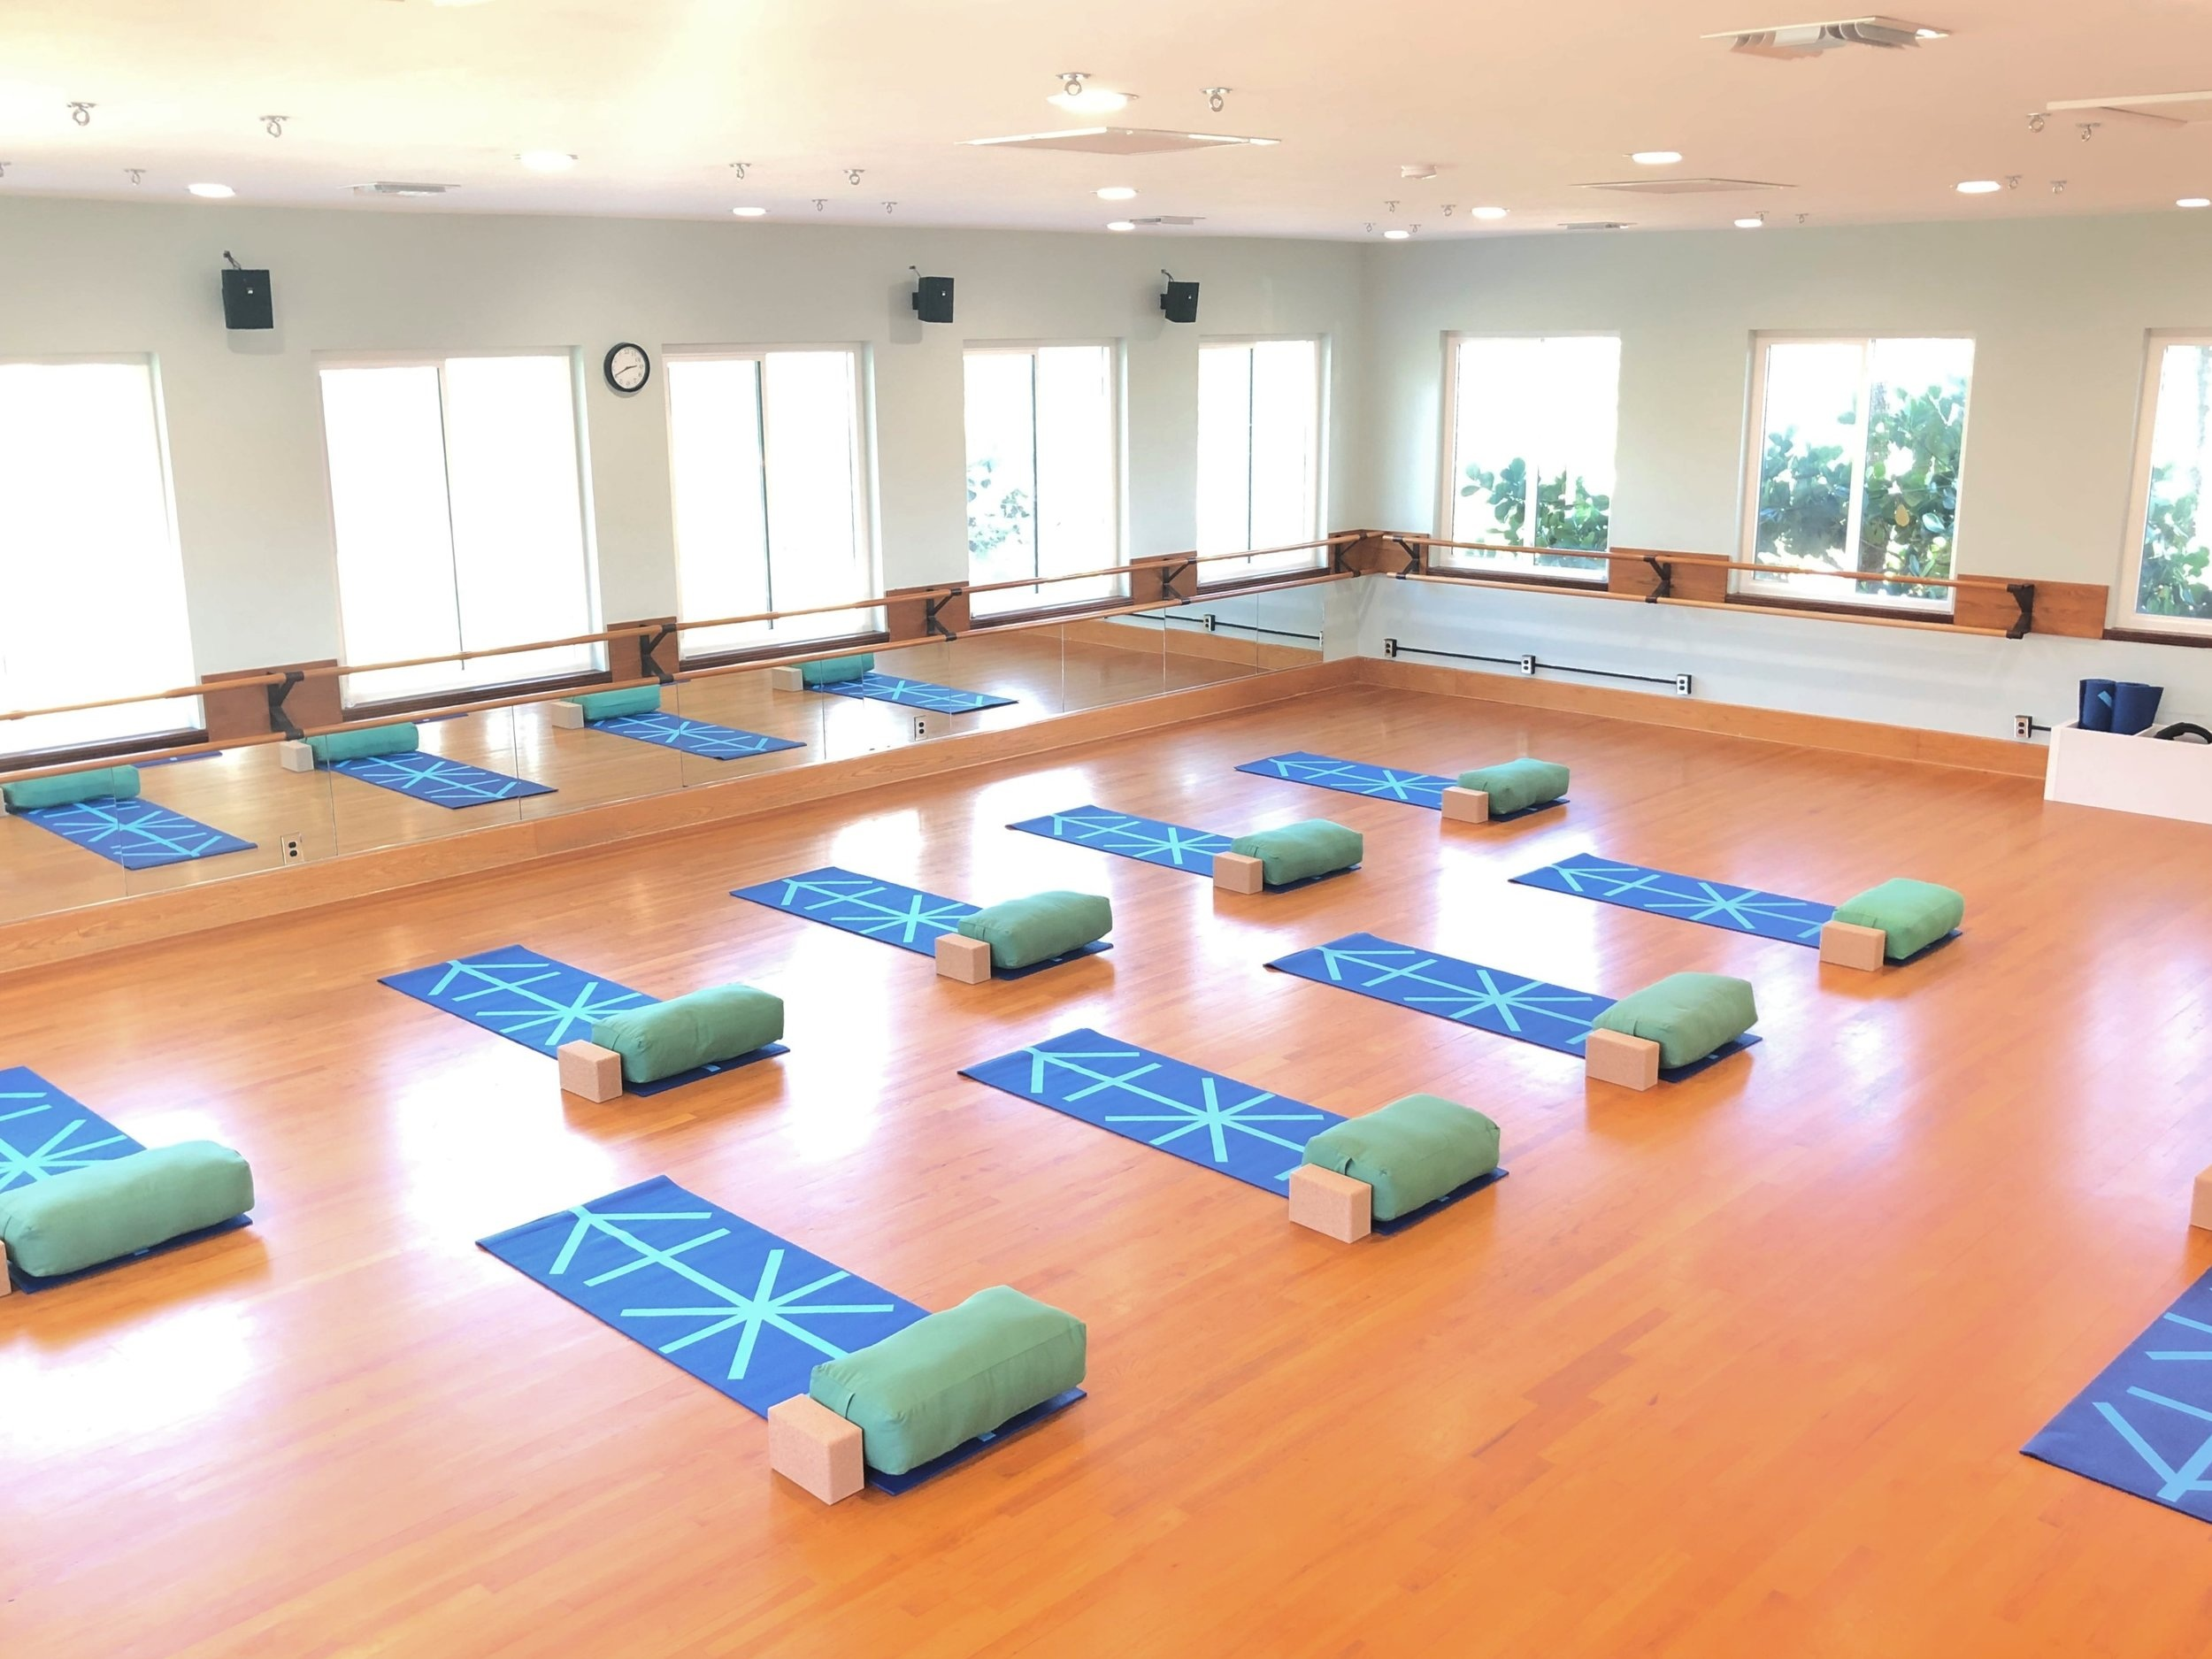 YOGA & PILATES STUDIO  Check out our monthly schedule for yoga and mat Pilates classes Let our highly trainer instructors lead a class…. No membership required! Walk-ins Welcome!